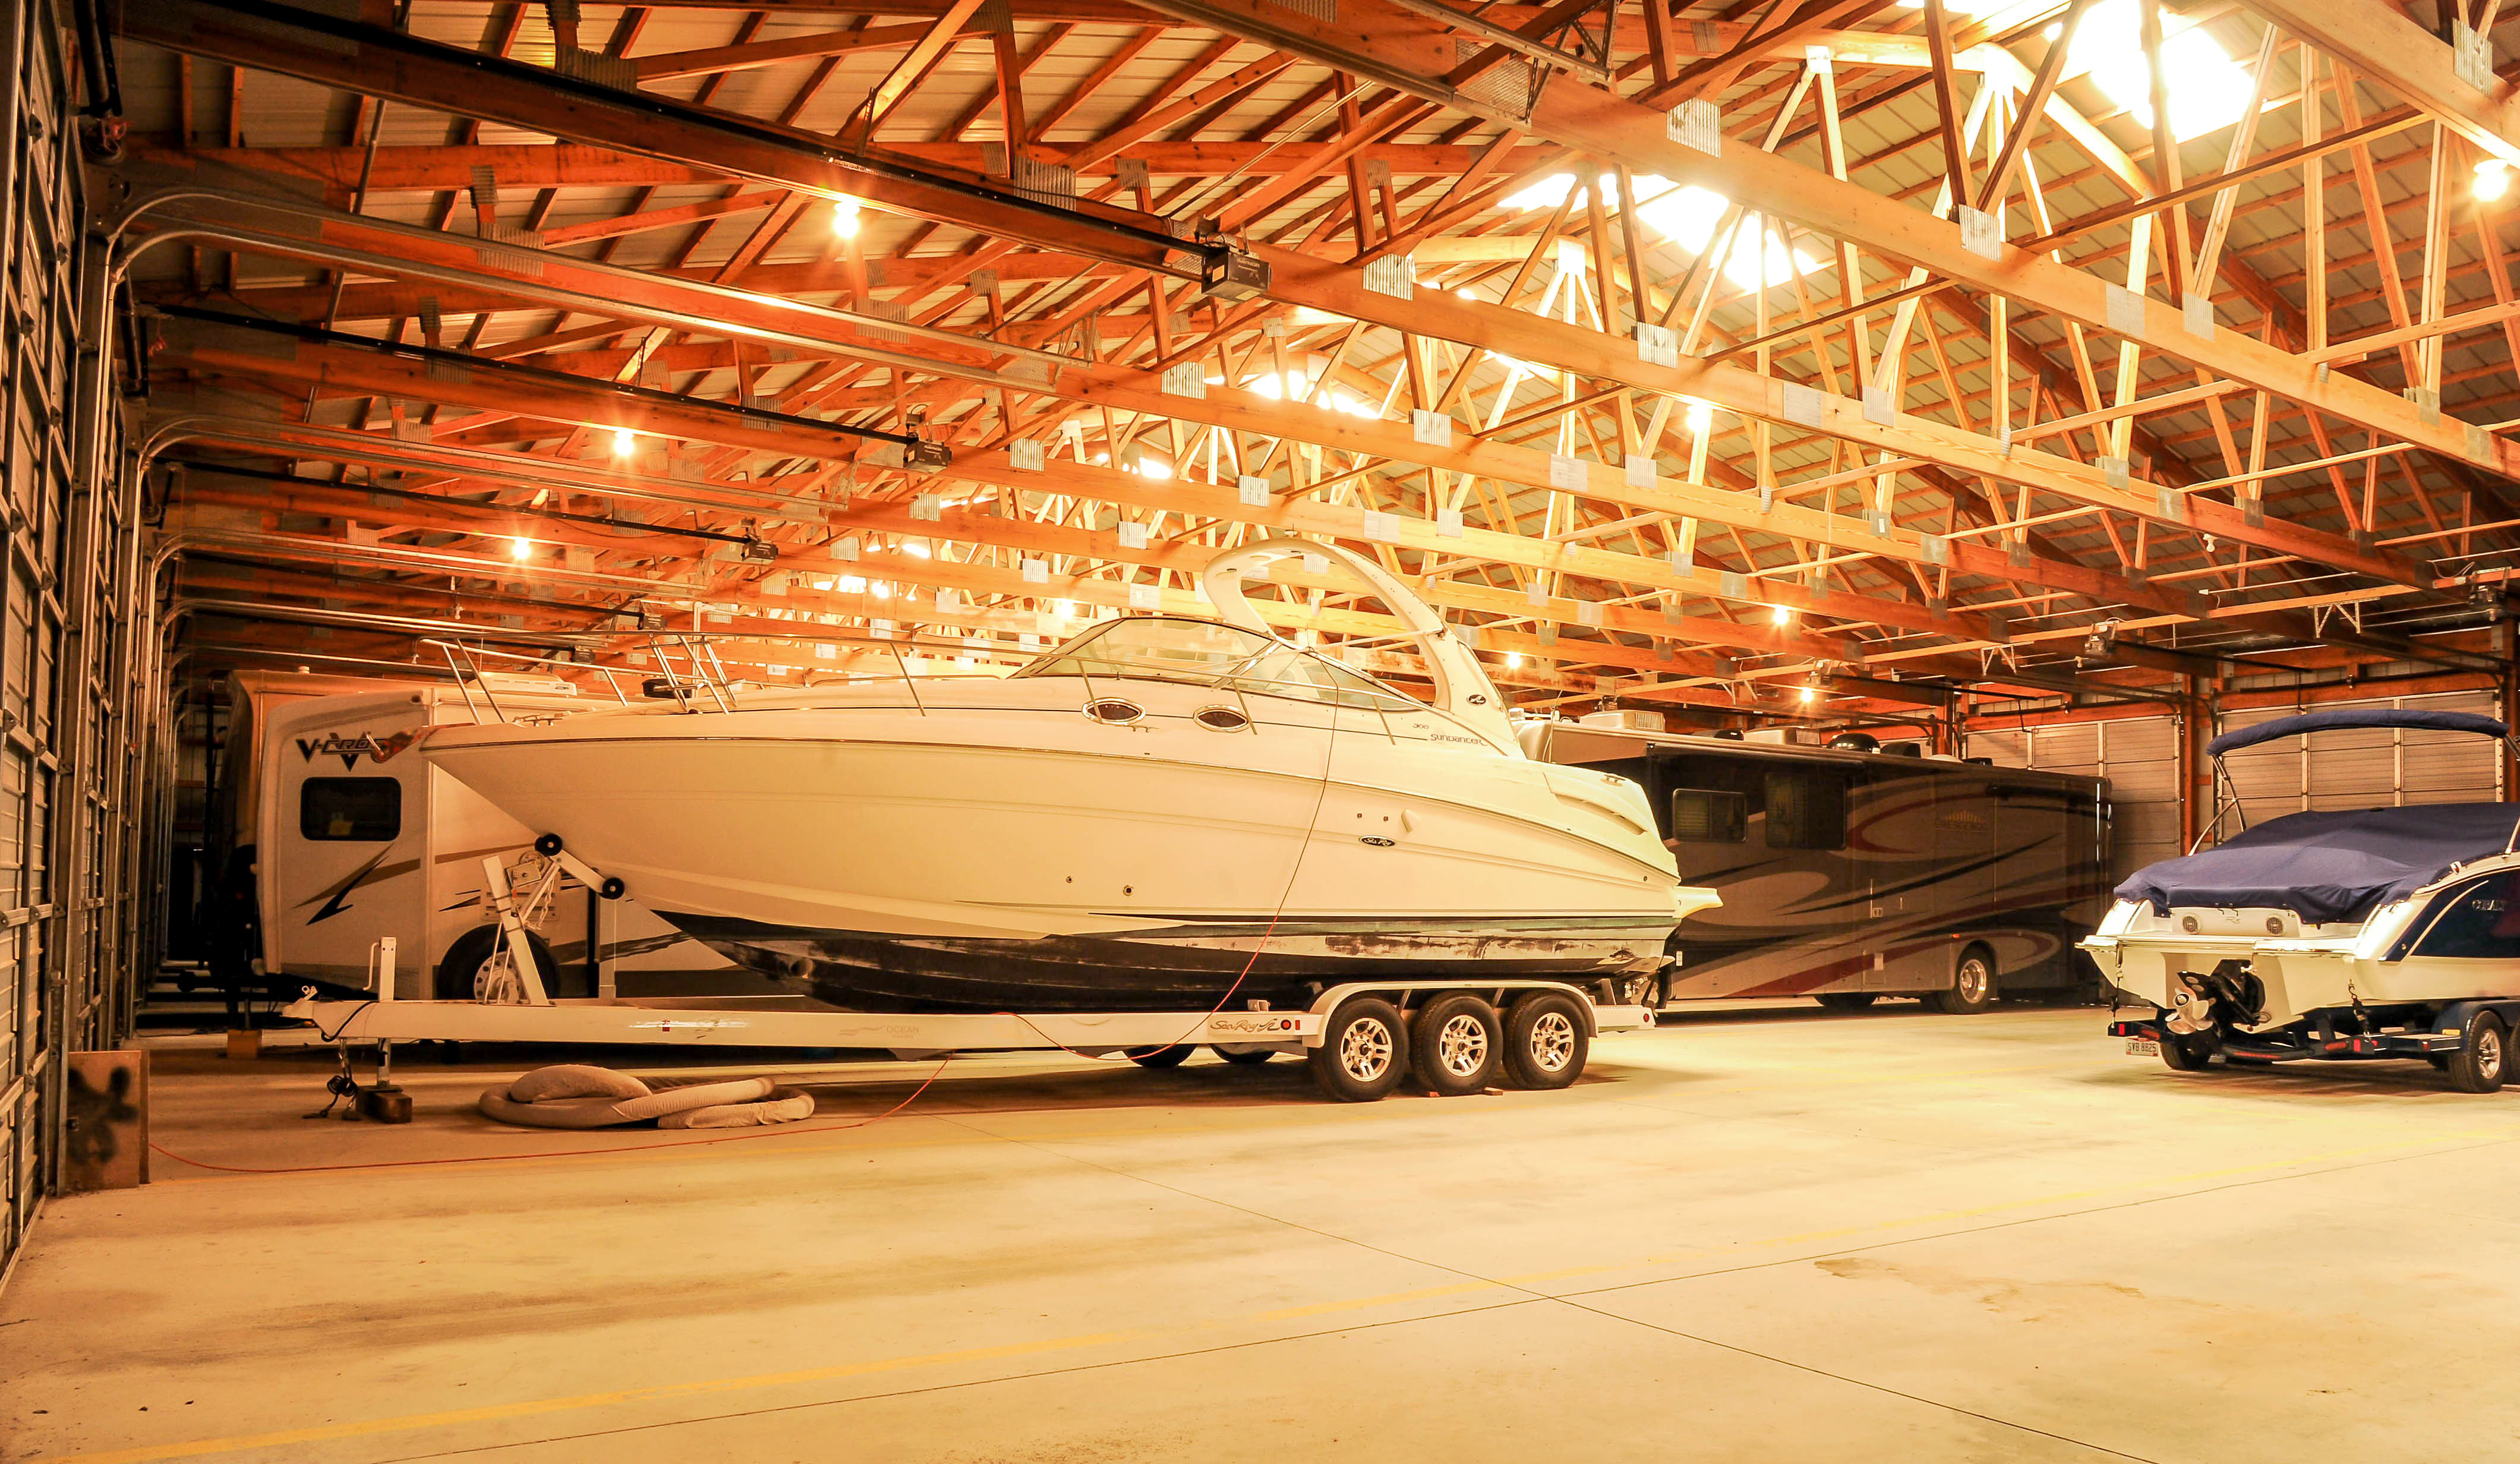 Boat and RV parking in beavercreek, oh